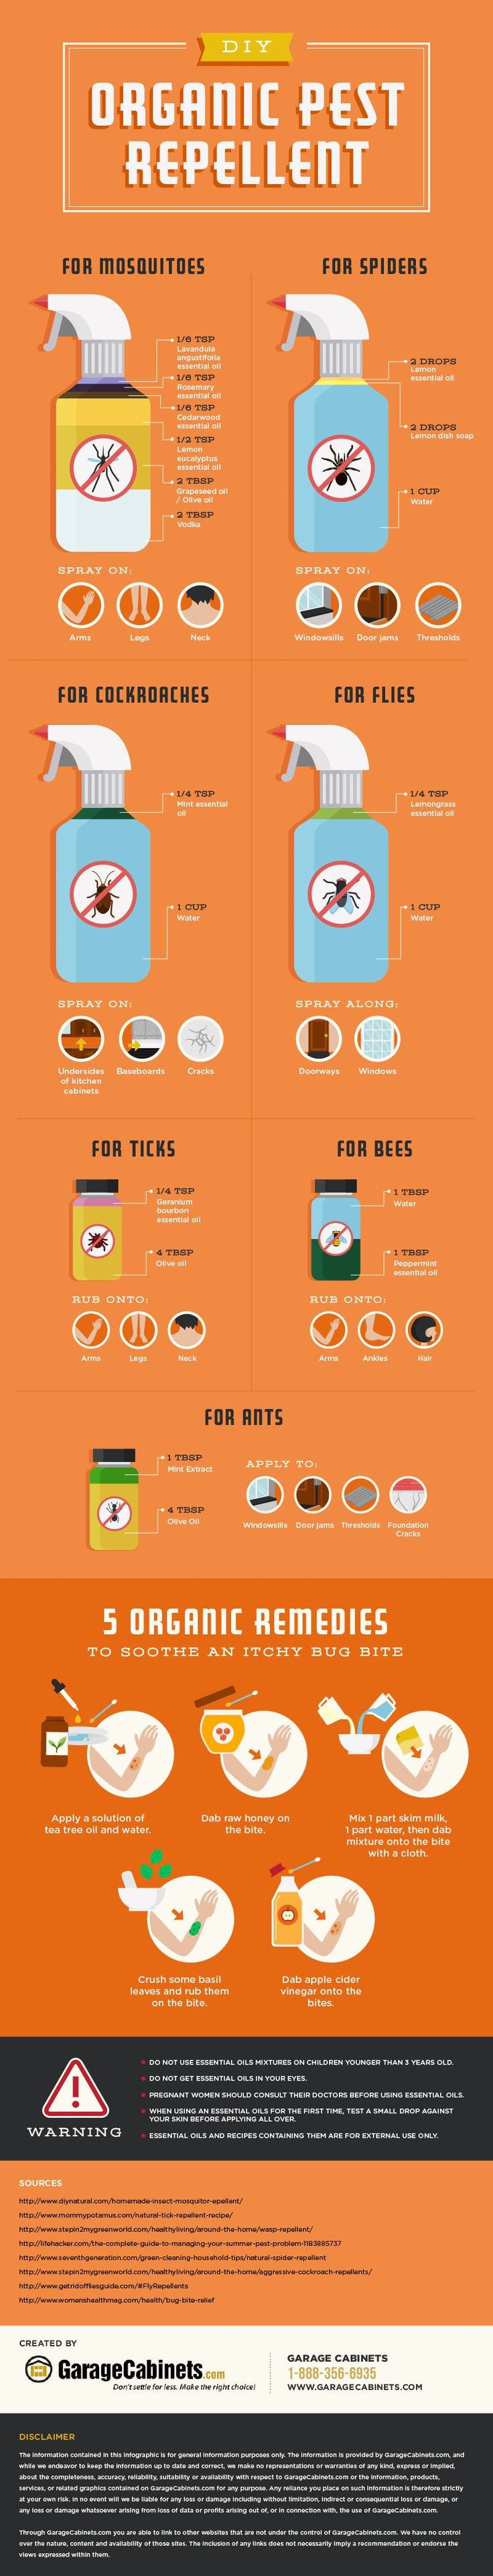 Summer brings many wonderful things, but bugs aren't one of them. Check out…